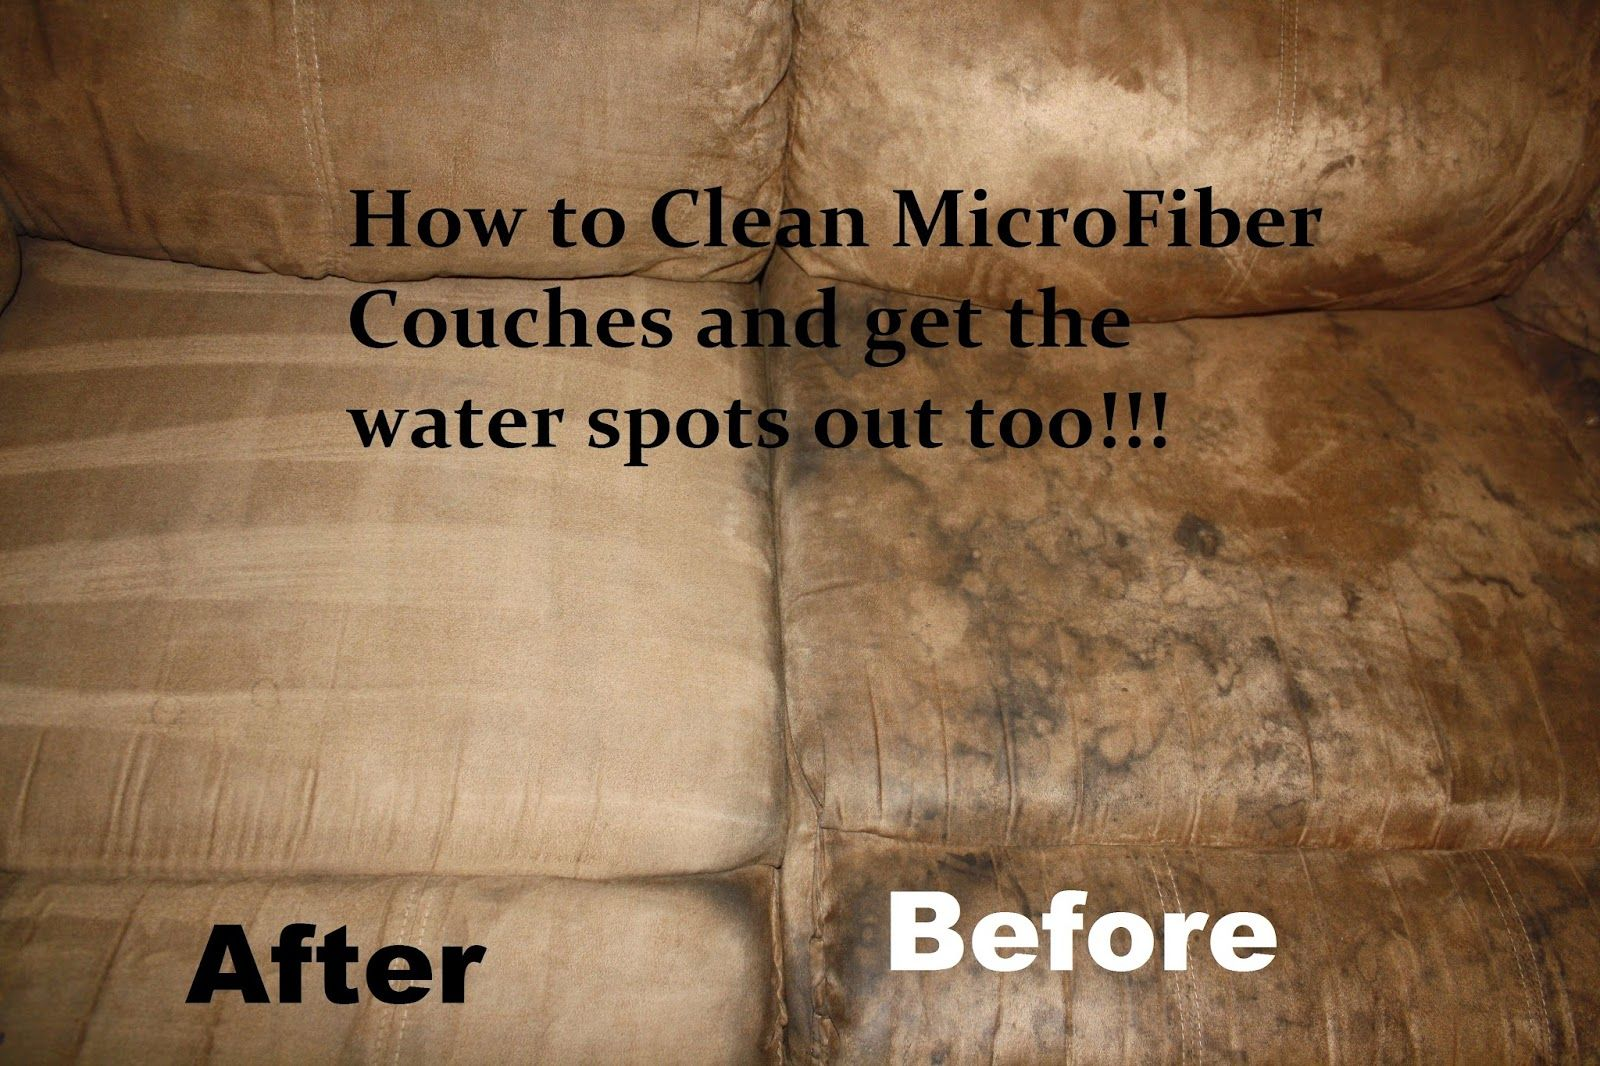 25+ Best Cleaning Microfiber Couch Ideas On Pinterest | Cleaning Microfiber  Sofa, Microfiber Couch And Micro Fiber Couch Cleaning